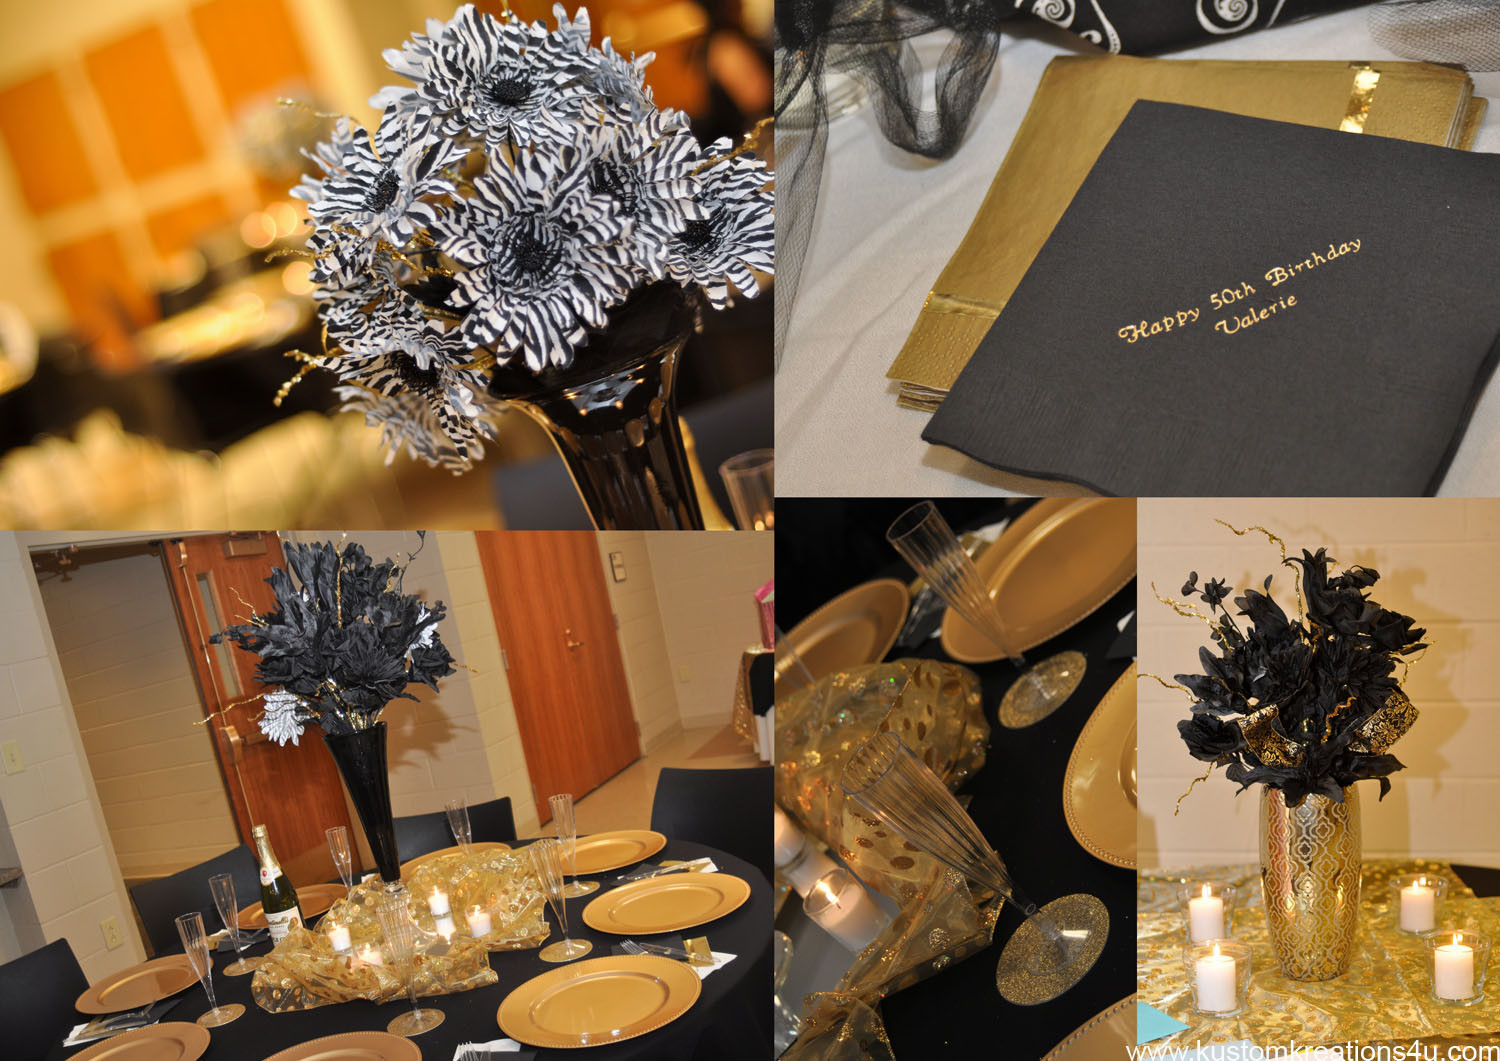 Best ideas about Black And Gold Birthday Decorations . Save or Pin Black & Gold 20's Theme 50th Birthday Celebration Now.